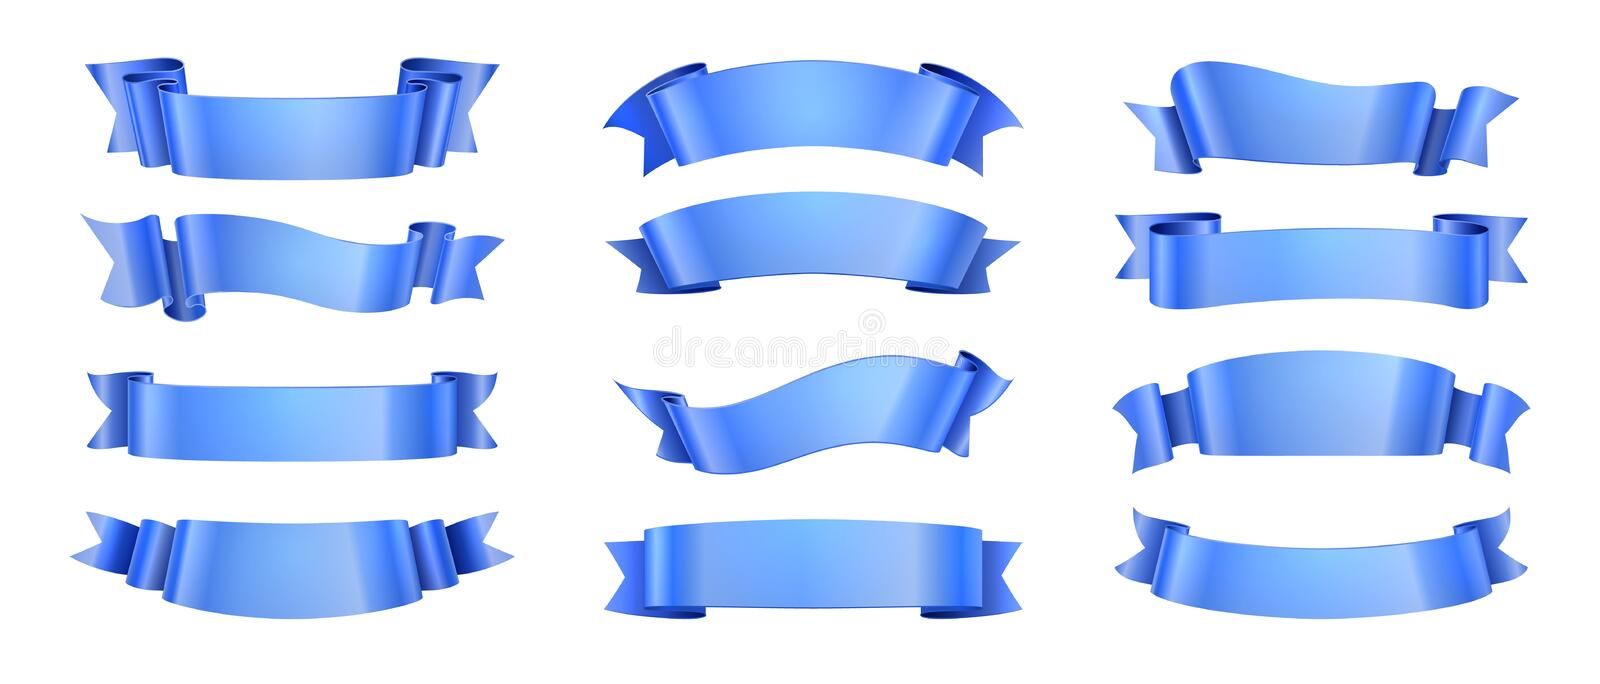 Blue ribbons. Realistic ribbon collection isolated. Vector elegance wave decoration elements with scroll shape for stock illustration